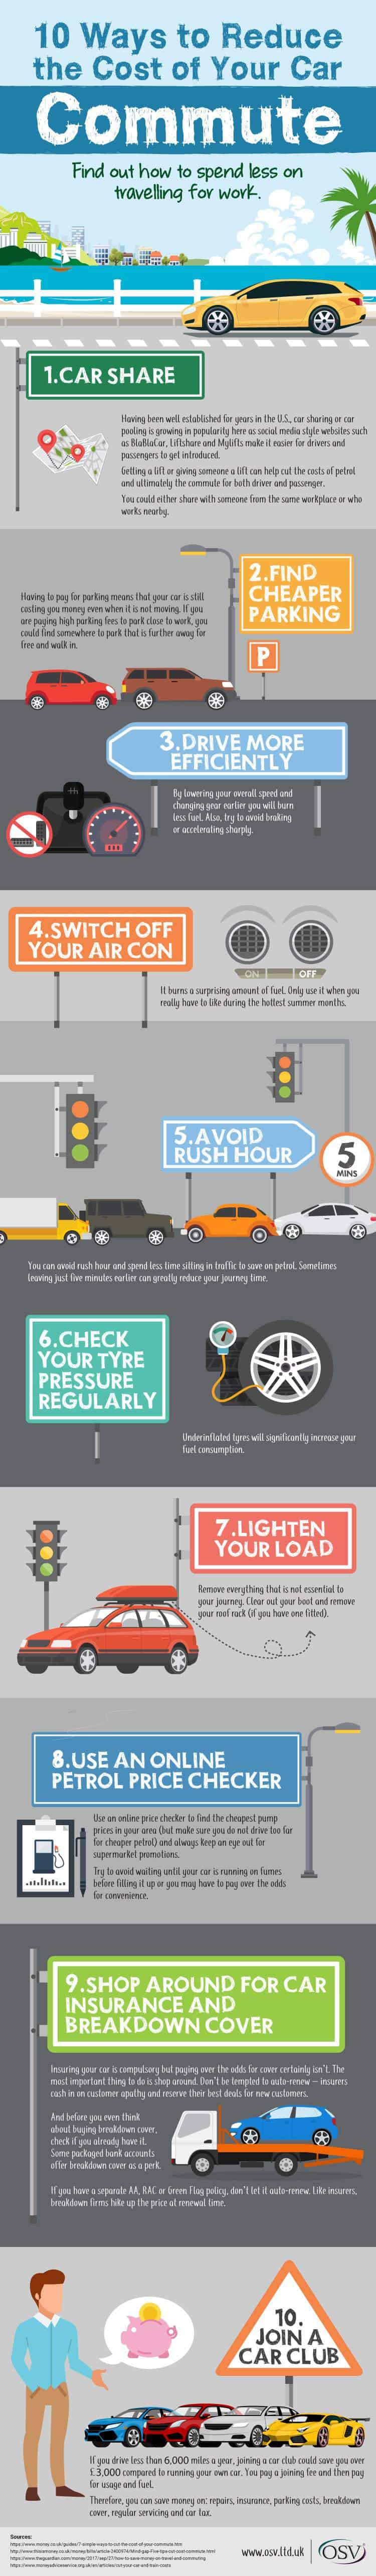 10 Ways to Reduce the Cost of Your Commute